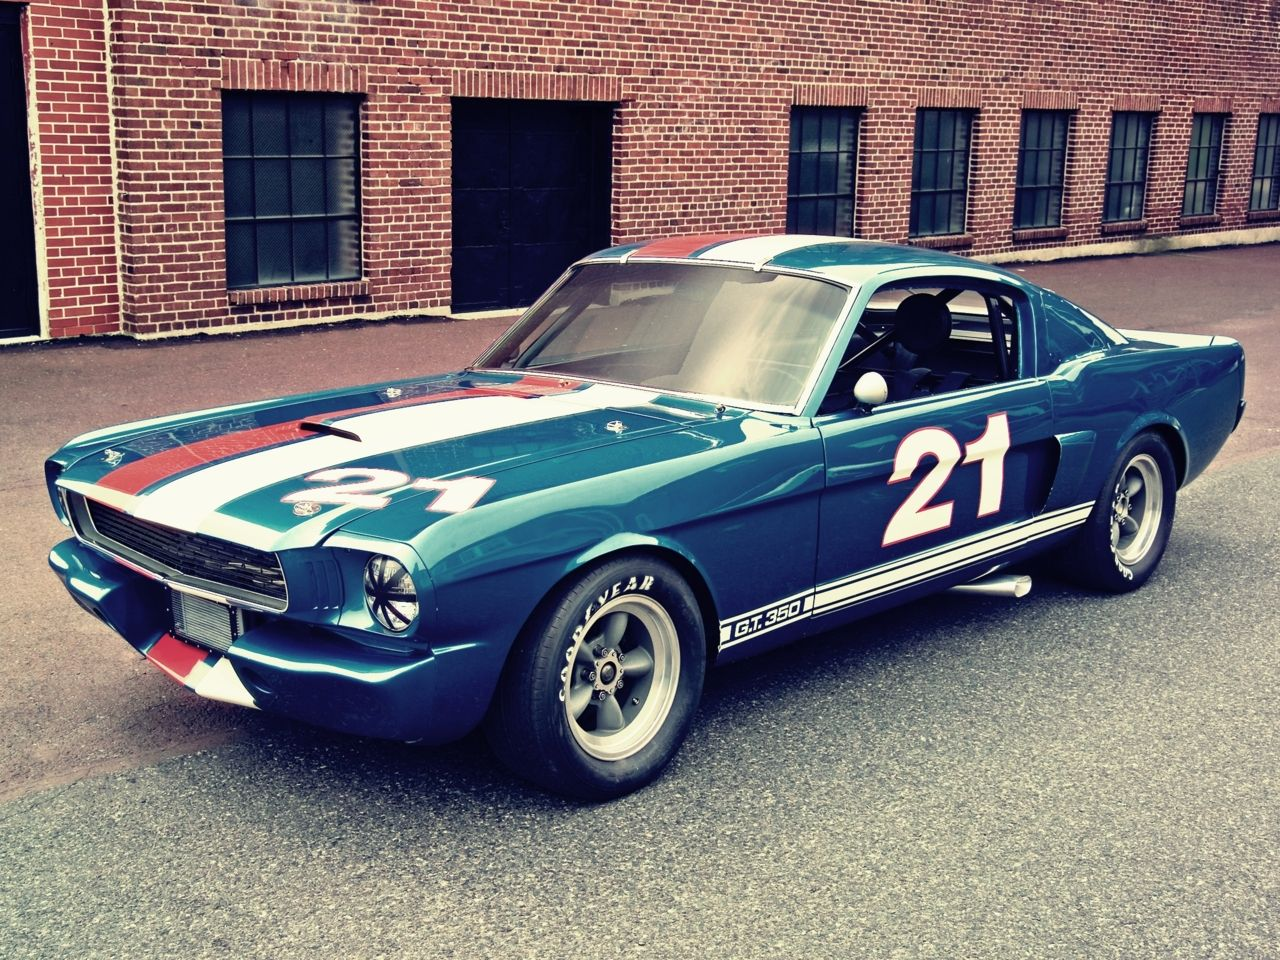 1966 Ford Mustang Shelby GT350H SCCA B-Production Race Car.